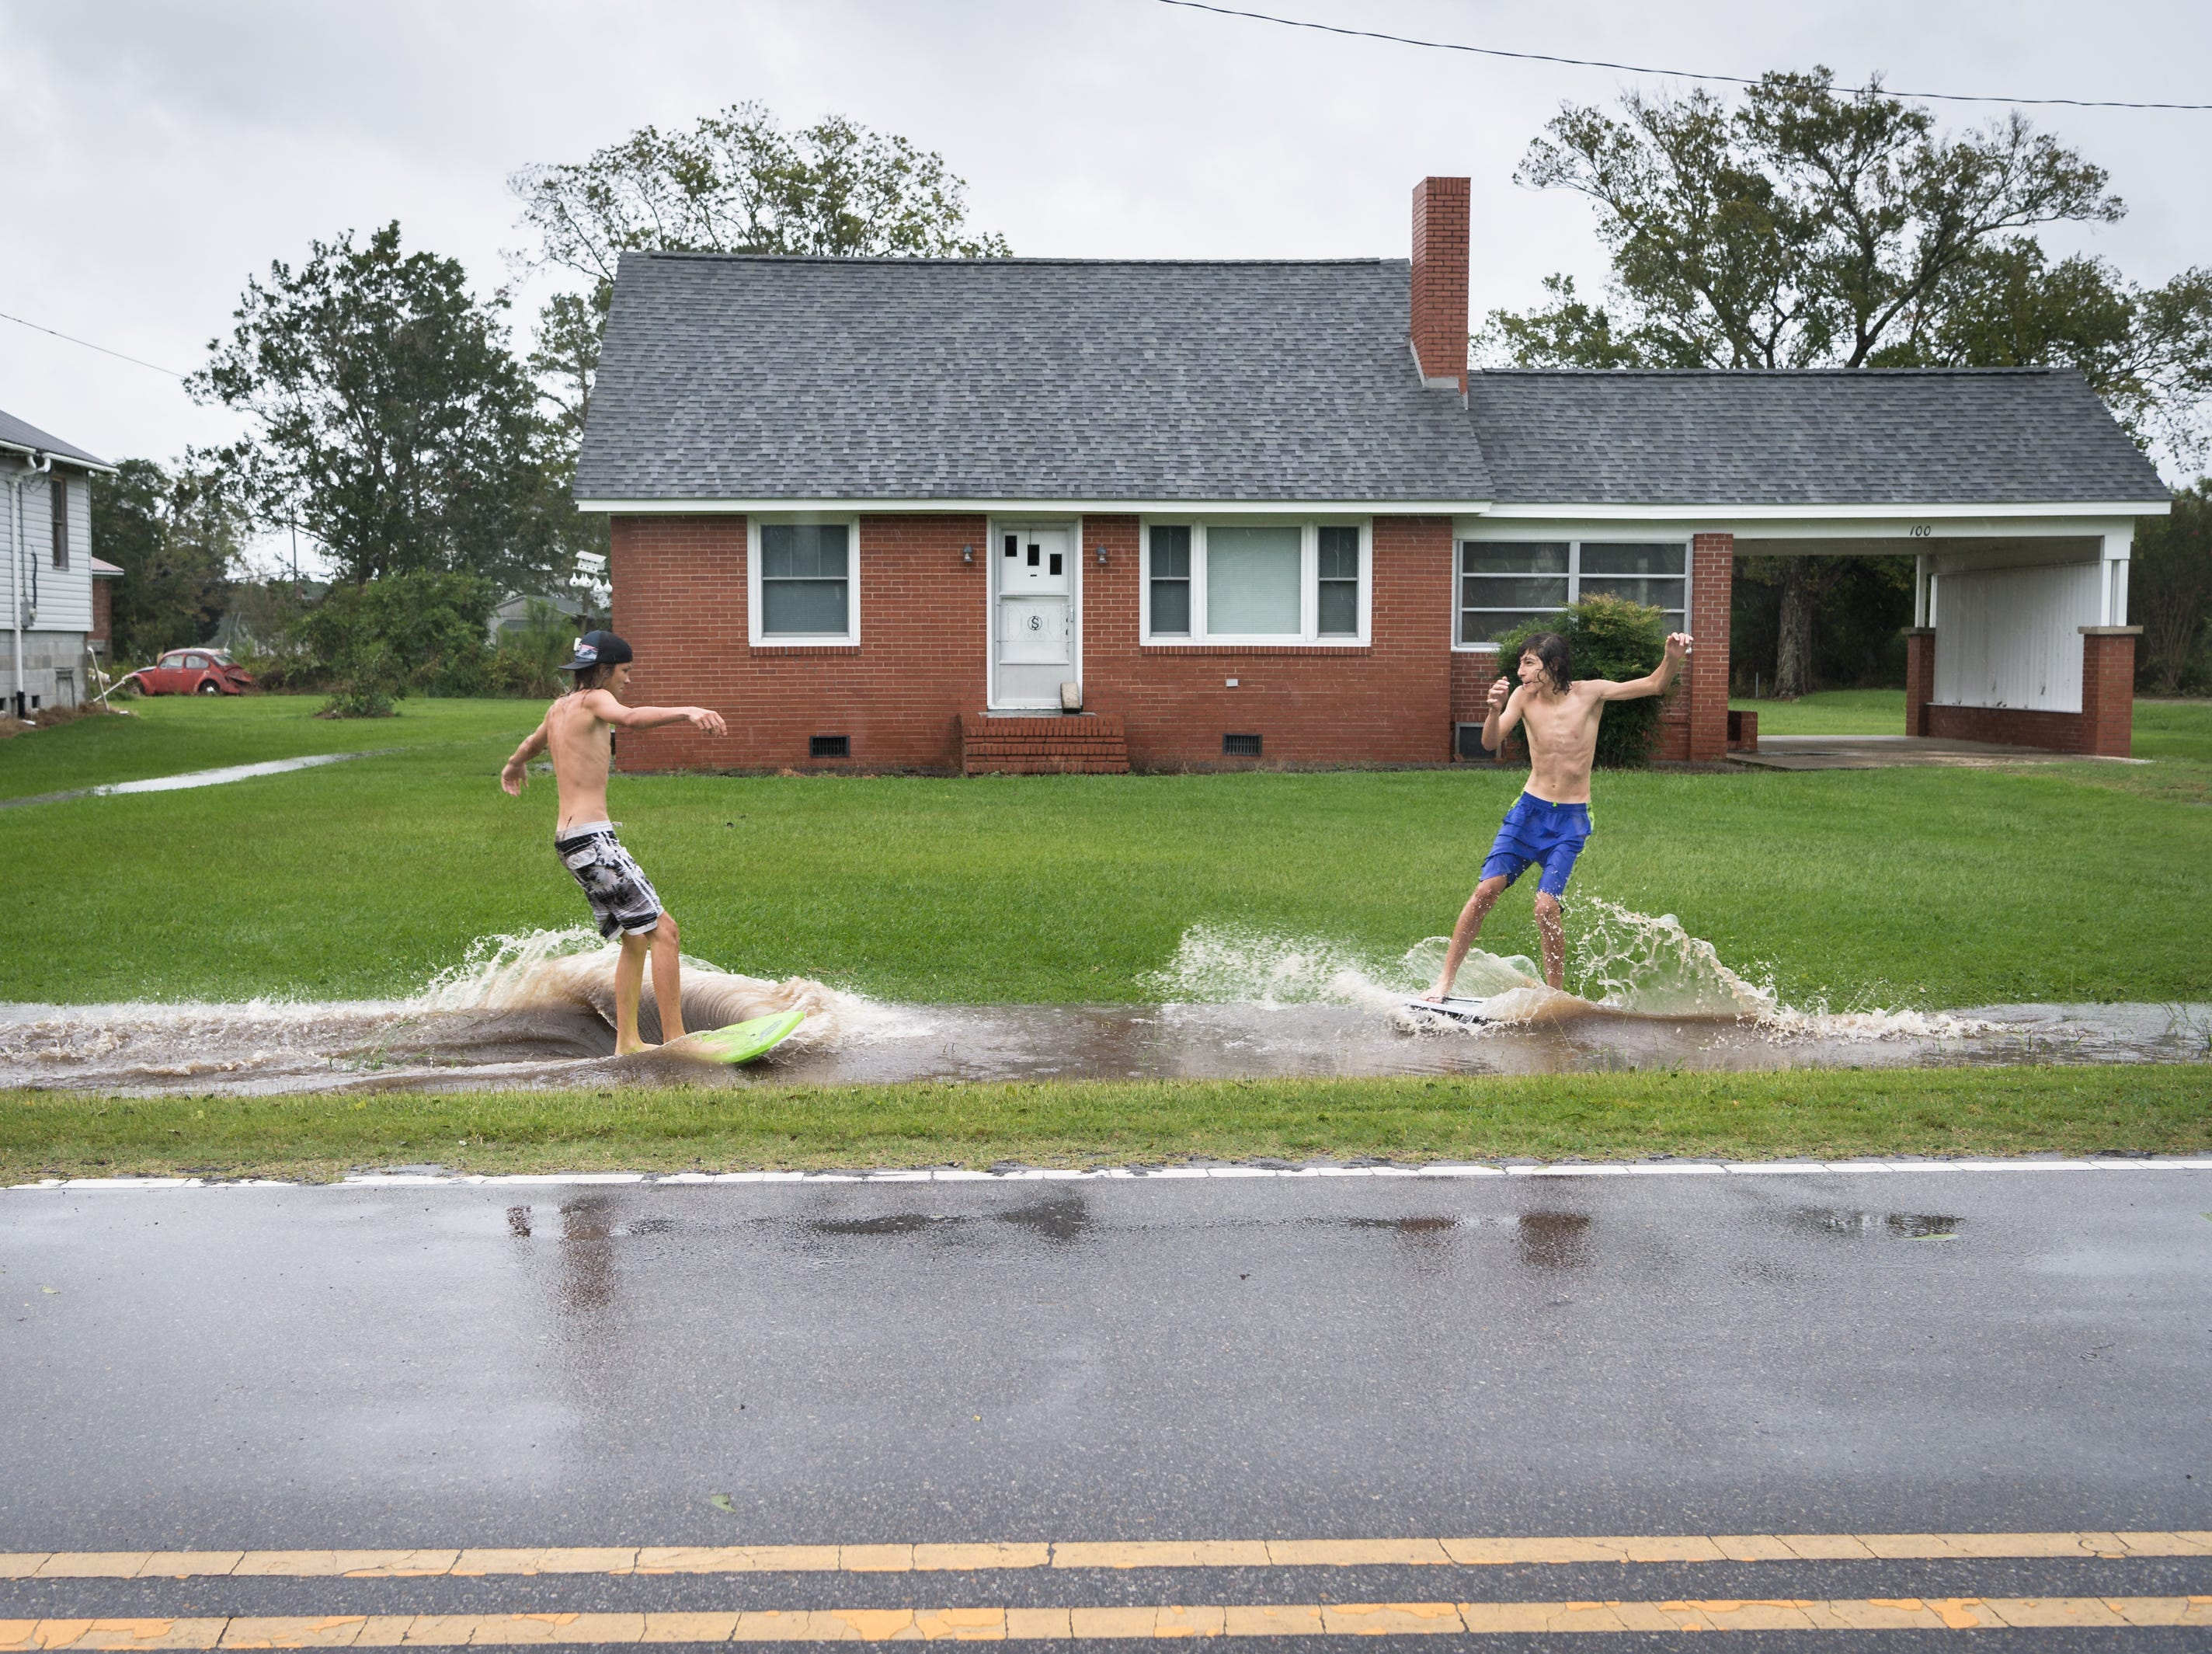 Deacon Etheredge, 14, and Fortino Beltran, also 14, surf on a large puddle on Main Street in Swan Quarter, N.C Sept. 14, 2018, after Hurricane Florence made landfall.